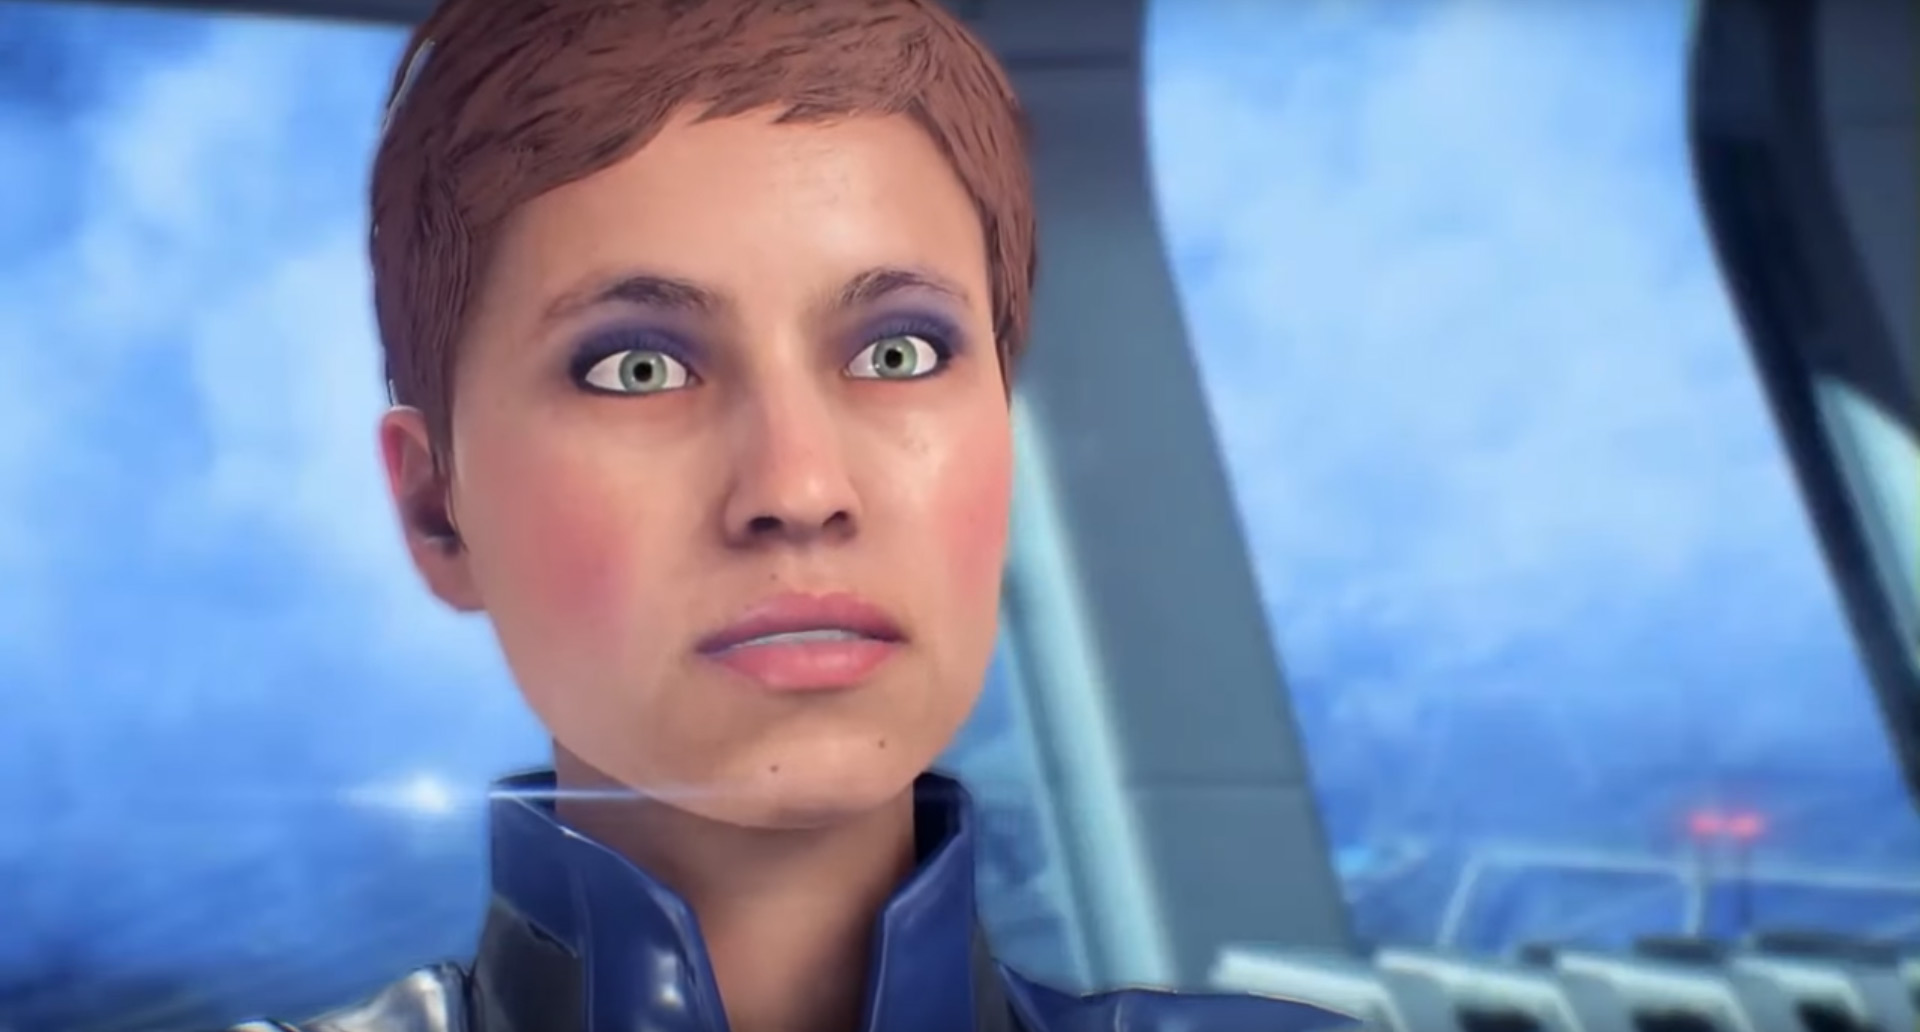 Mass Effect Andromeda Gets Free Demo on PS4, Xbox One and PC with New Trailer